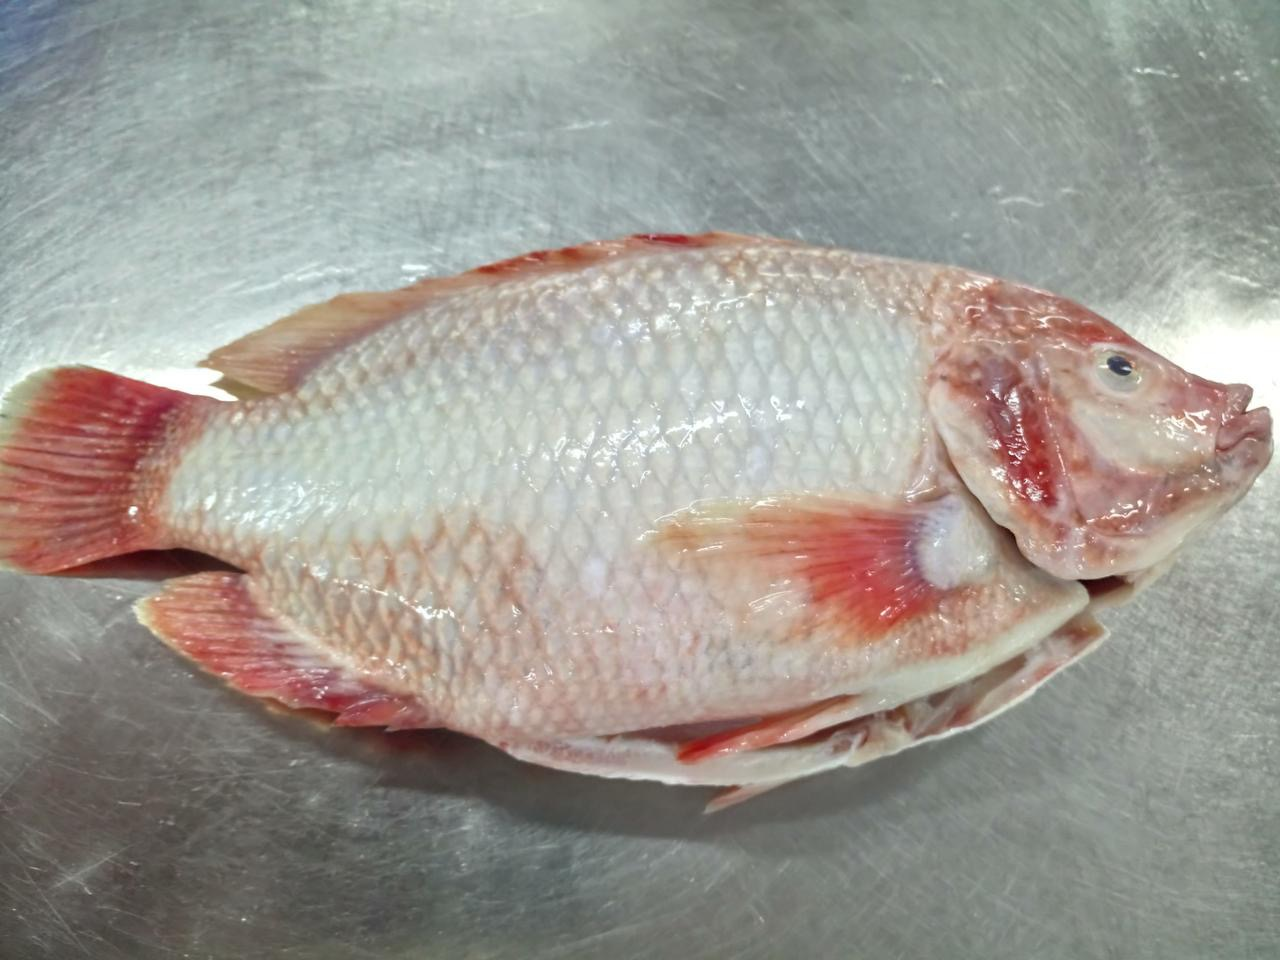 Red Tilapia gutted and scaled